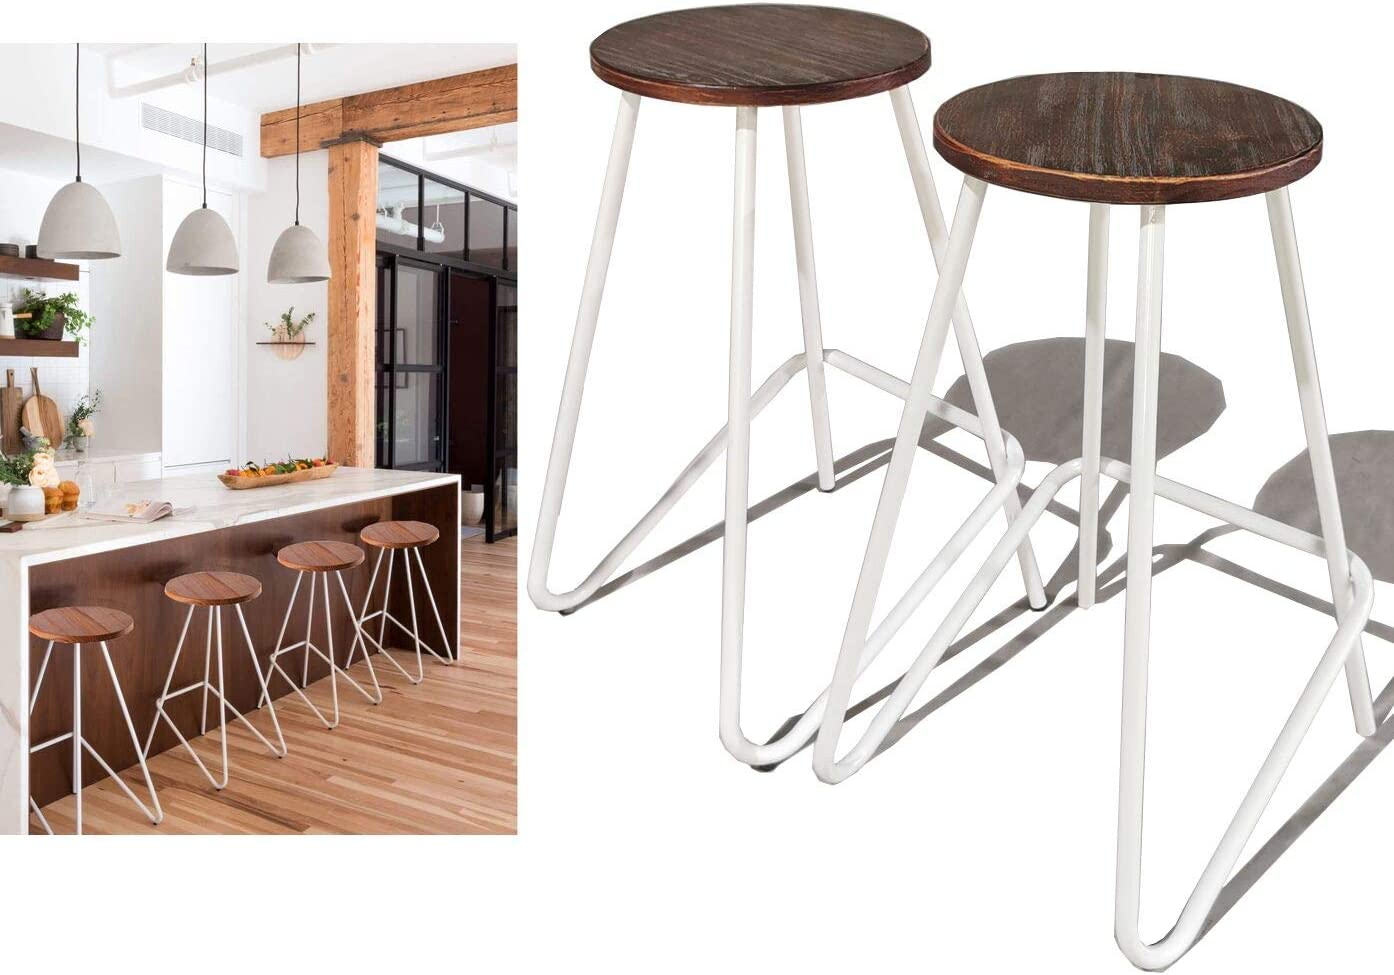 Diwhy Industrial Bar Stools,Kitchen Dining Chair,Wood and Metal Bar  Stool,Industrial Backless Counter Height Bar Chair White,27.2\